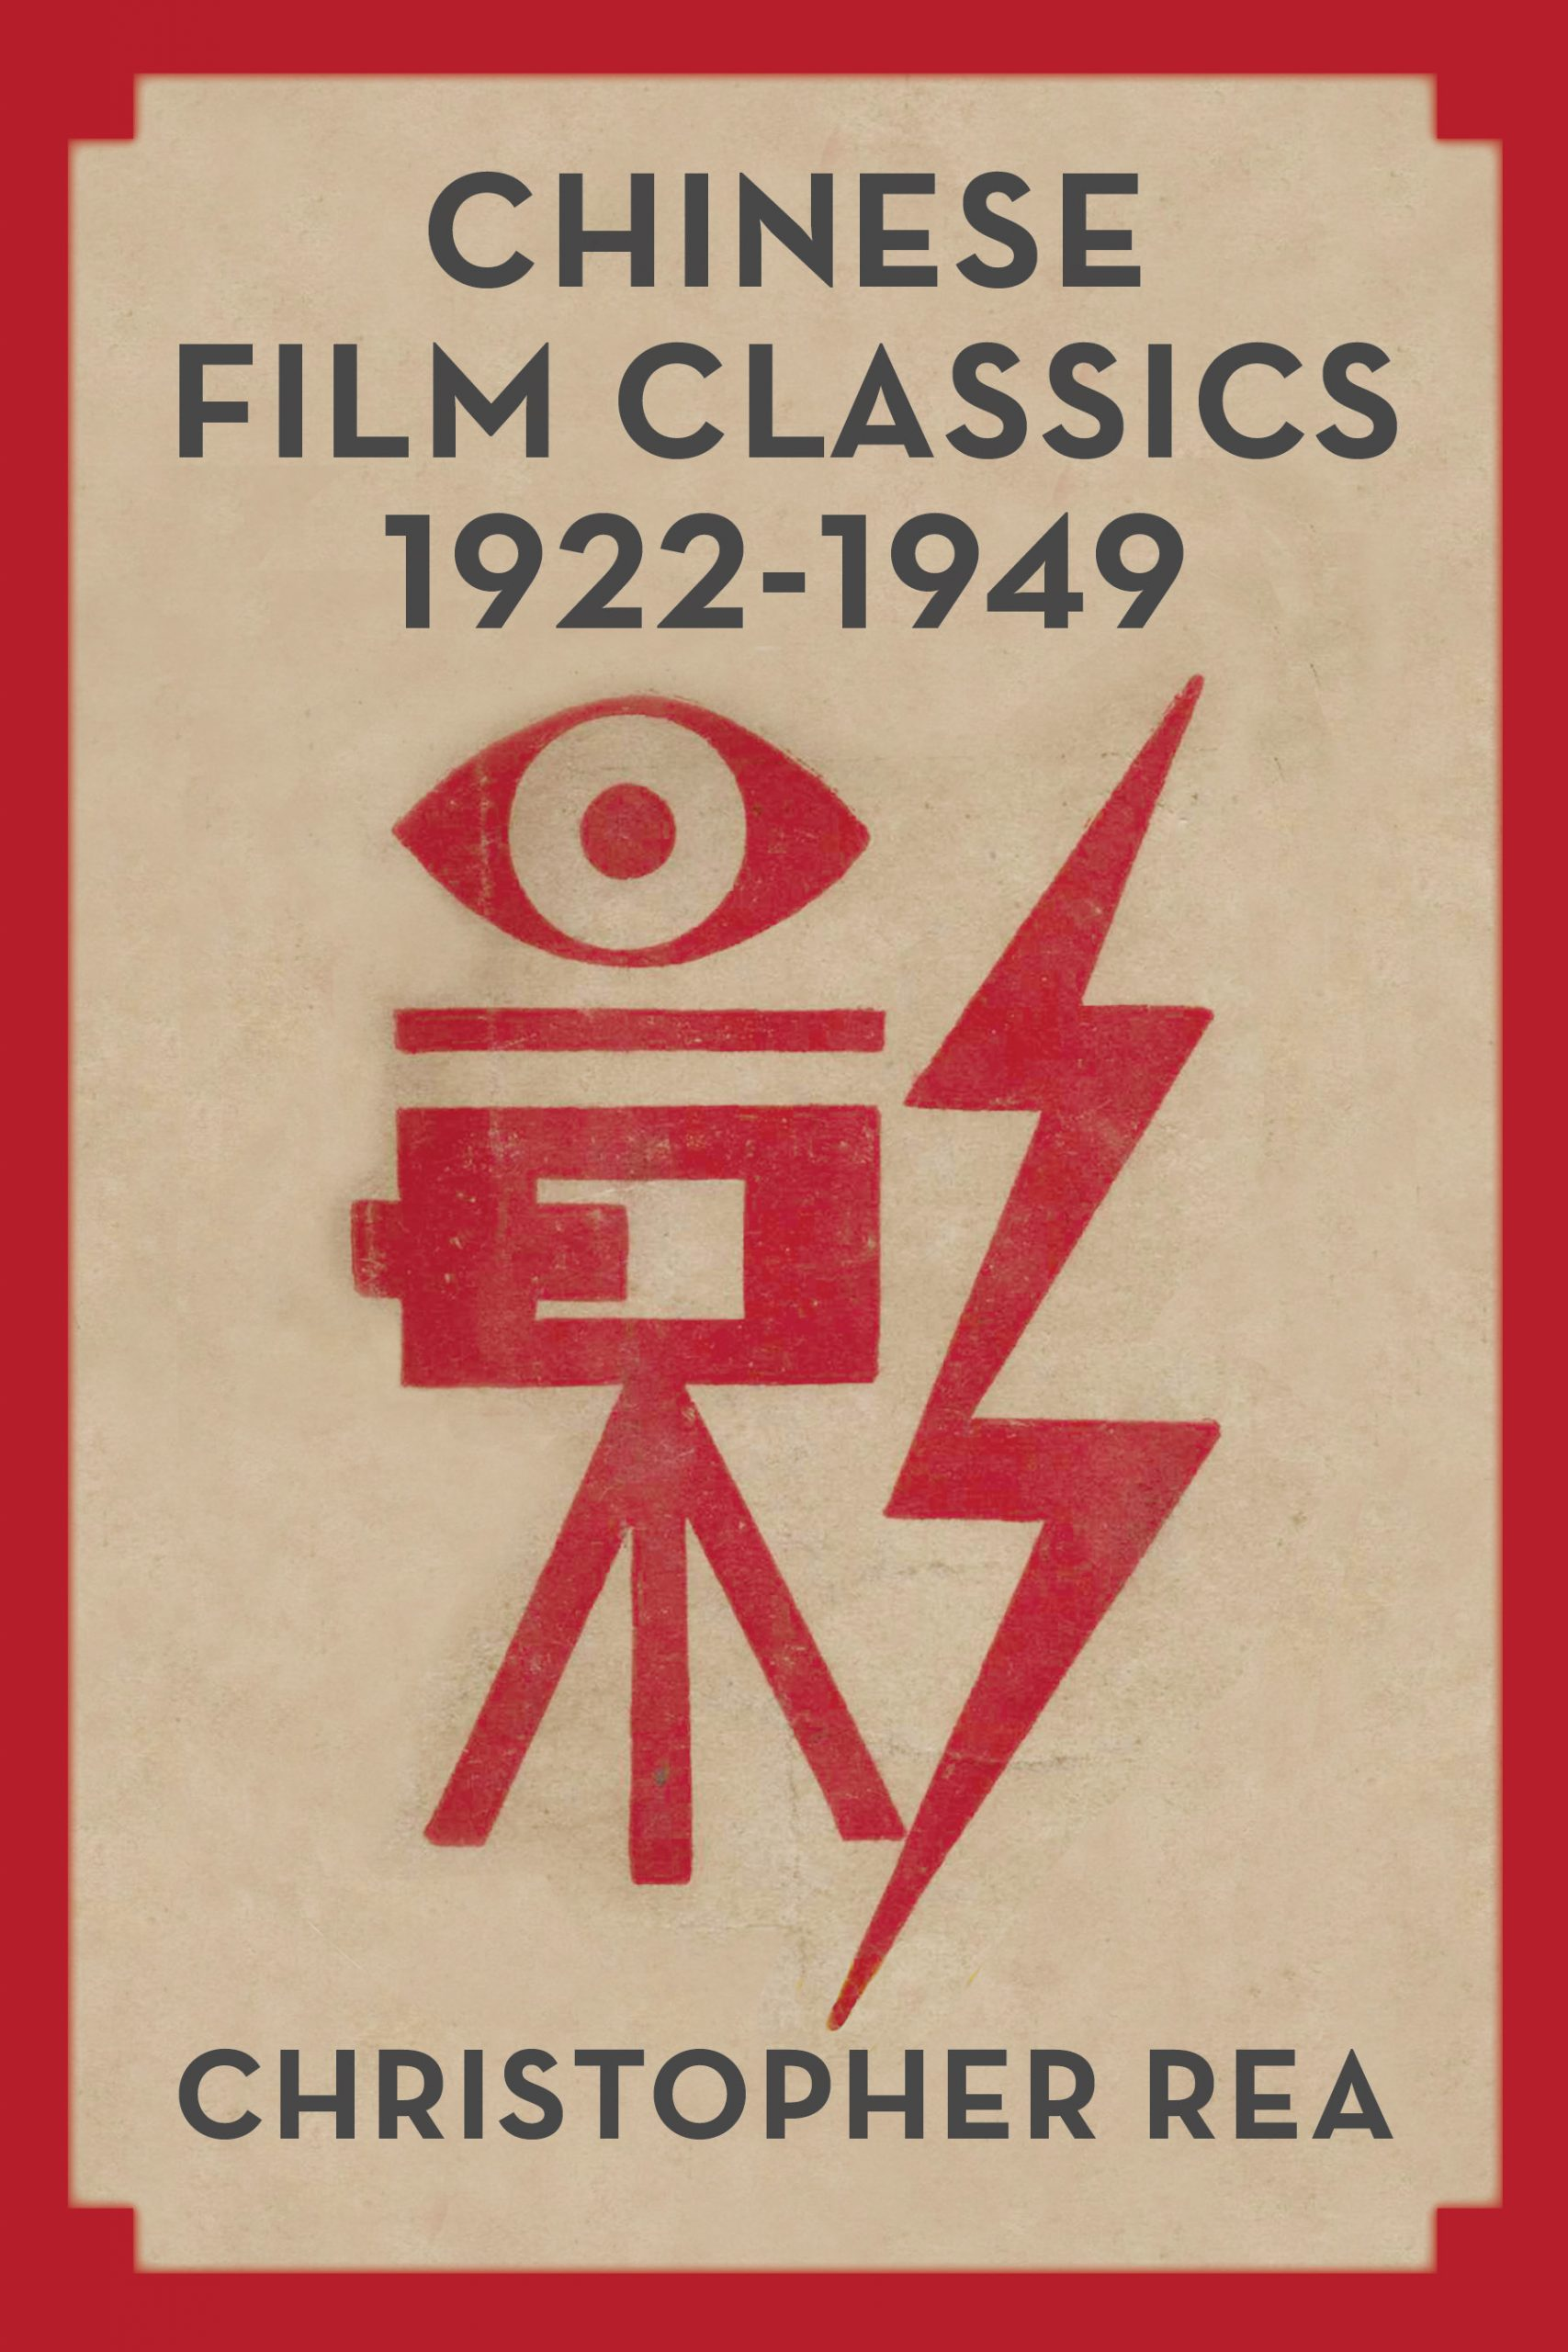 Chinese Film Classics 1922-1949 by Christopher Rea